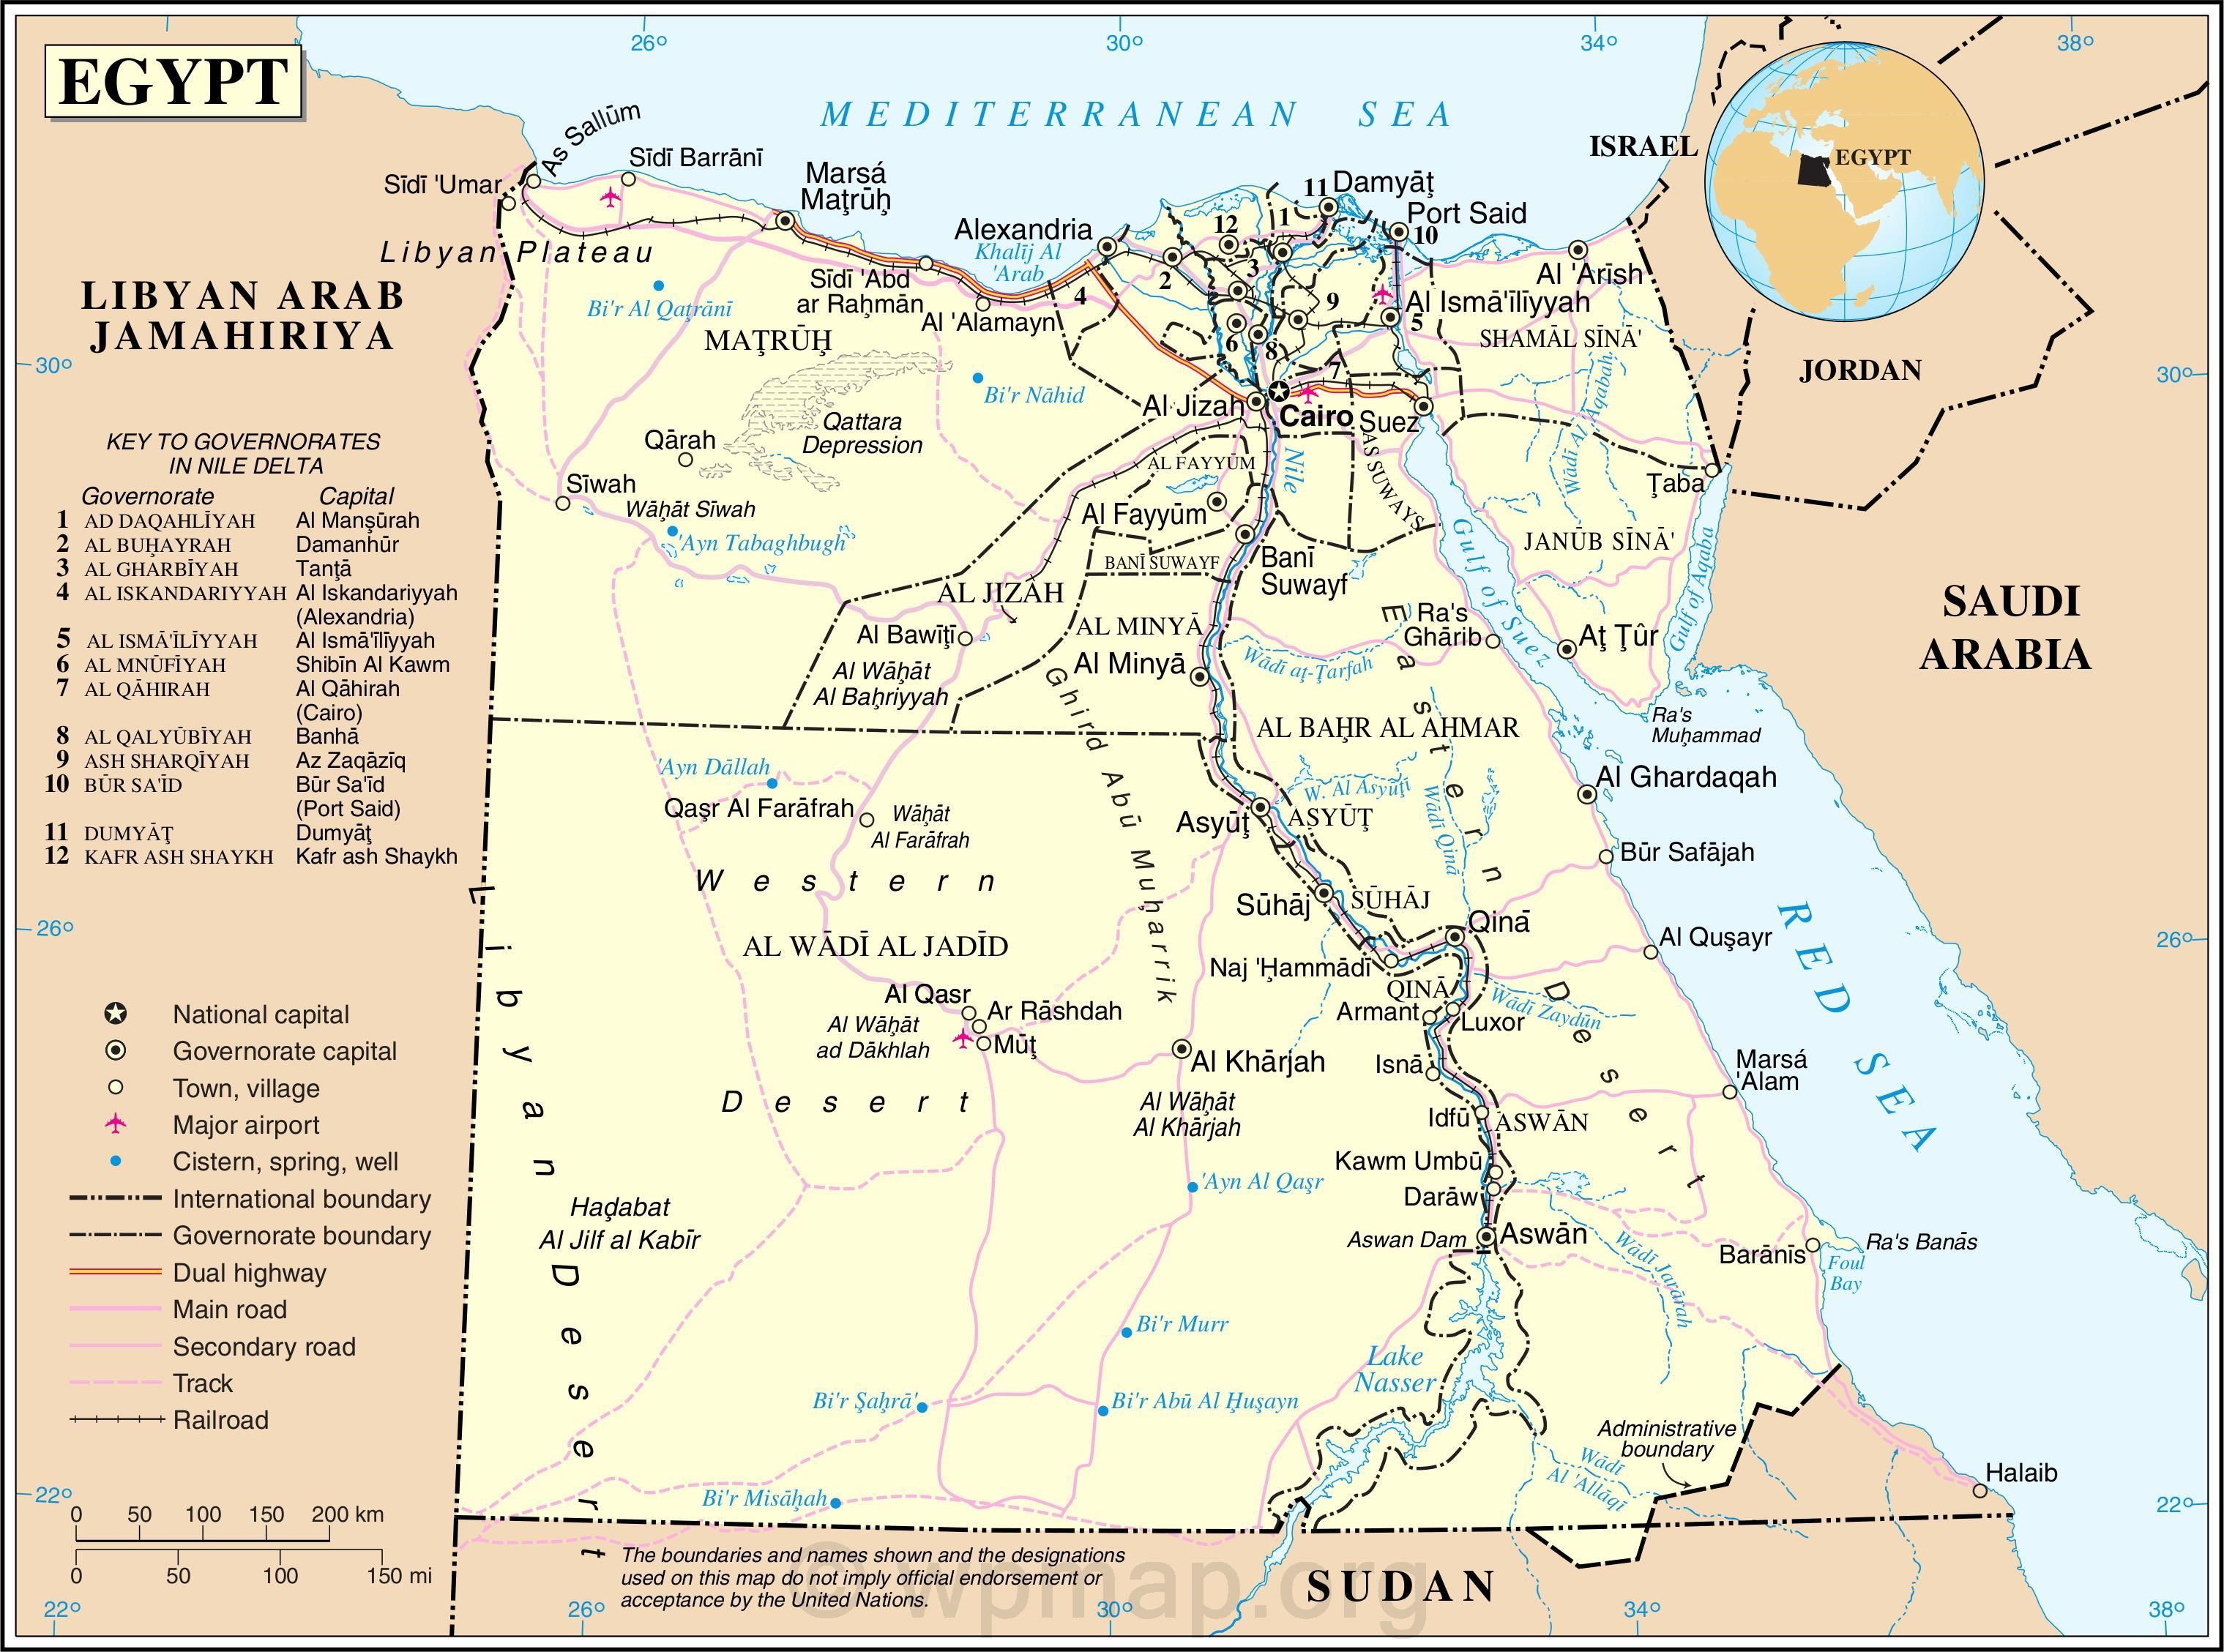 large-detailed-political-and-administrative-map-of-egypt-with-all-cities-roads-and-airports